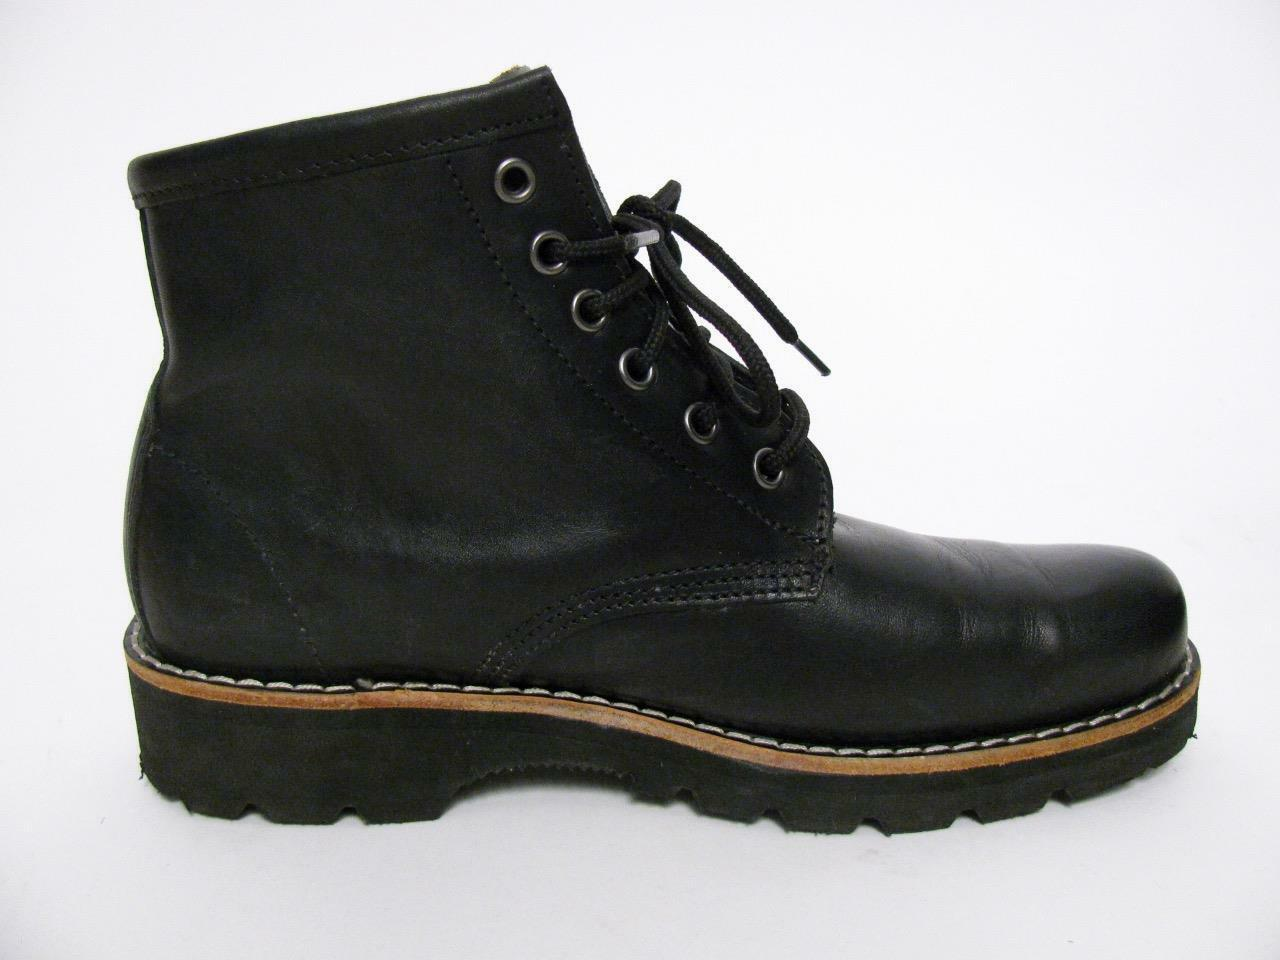 ROOTS CANADA BLACK LEATHER AMAZING LACED CHELSEA AMAZING LEATHER QUALITY LADIES Stiefel Schuhe 9.5 c5c82f